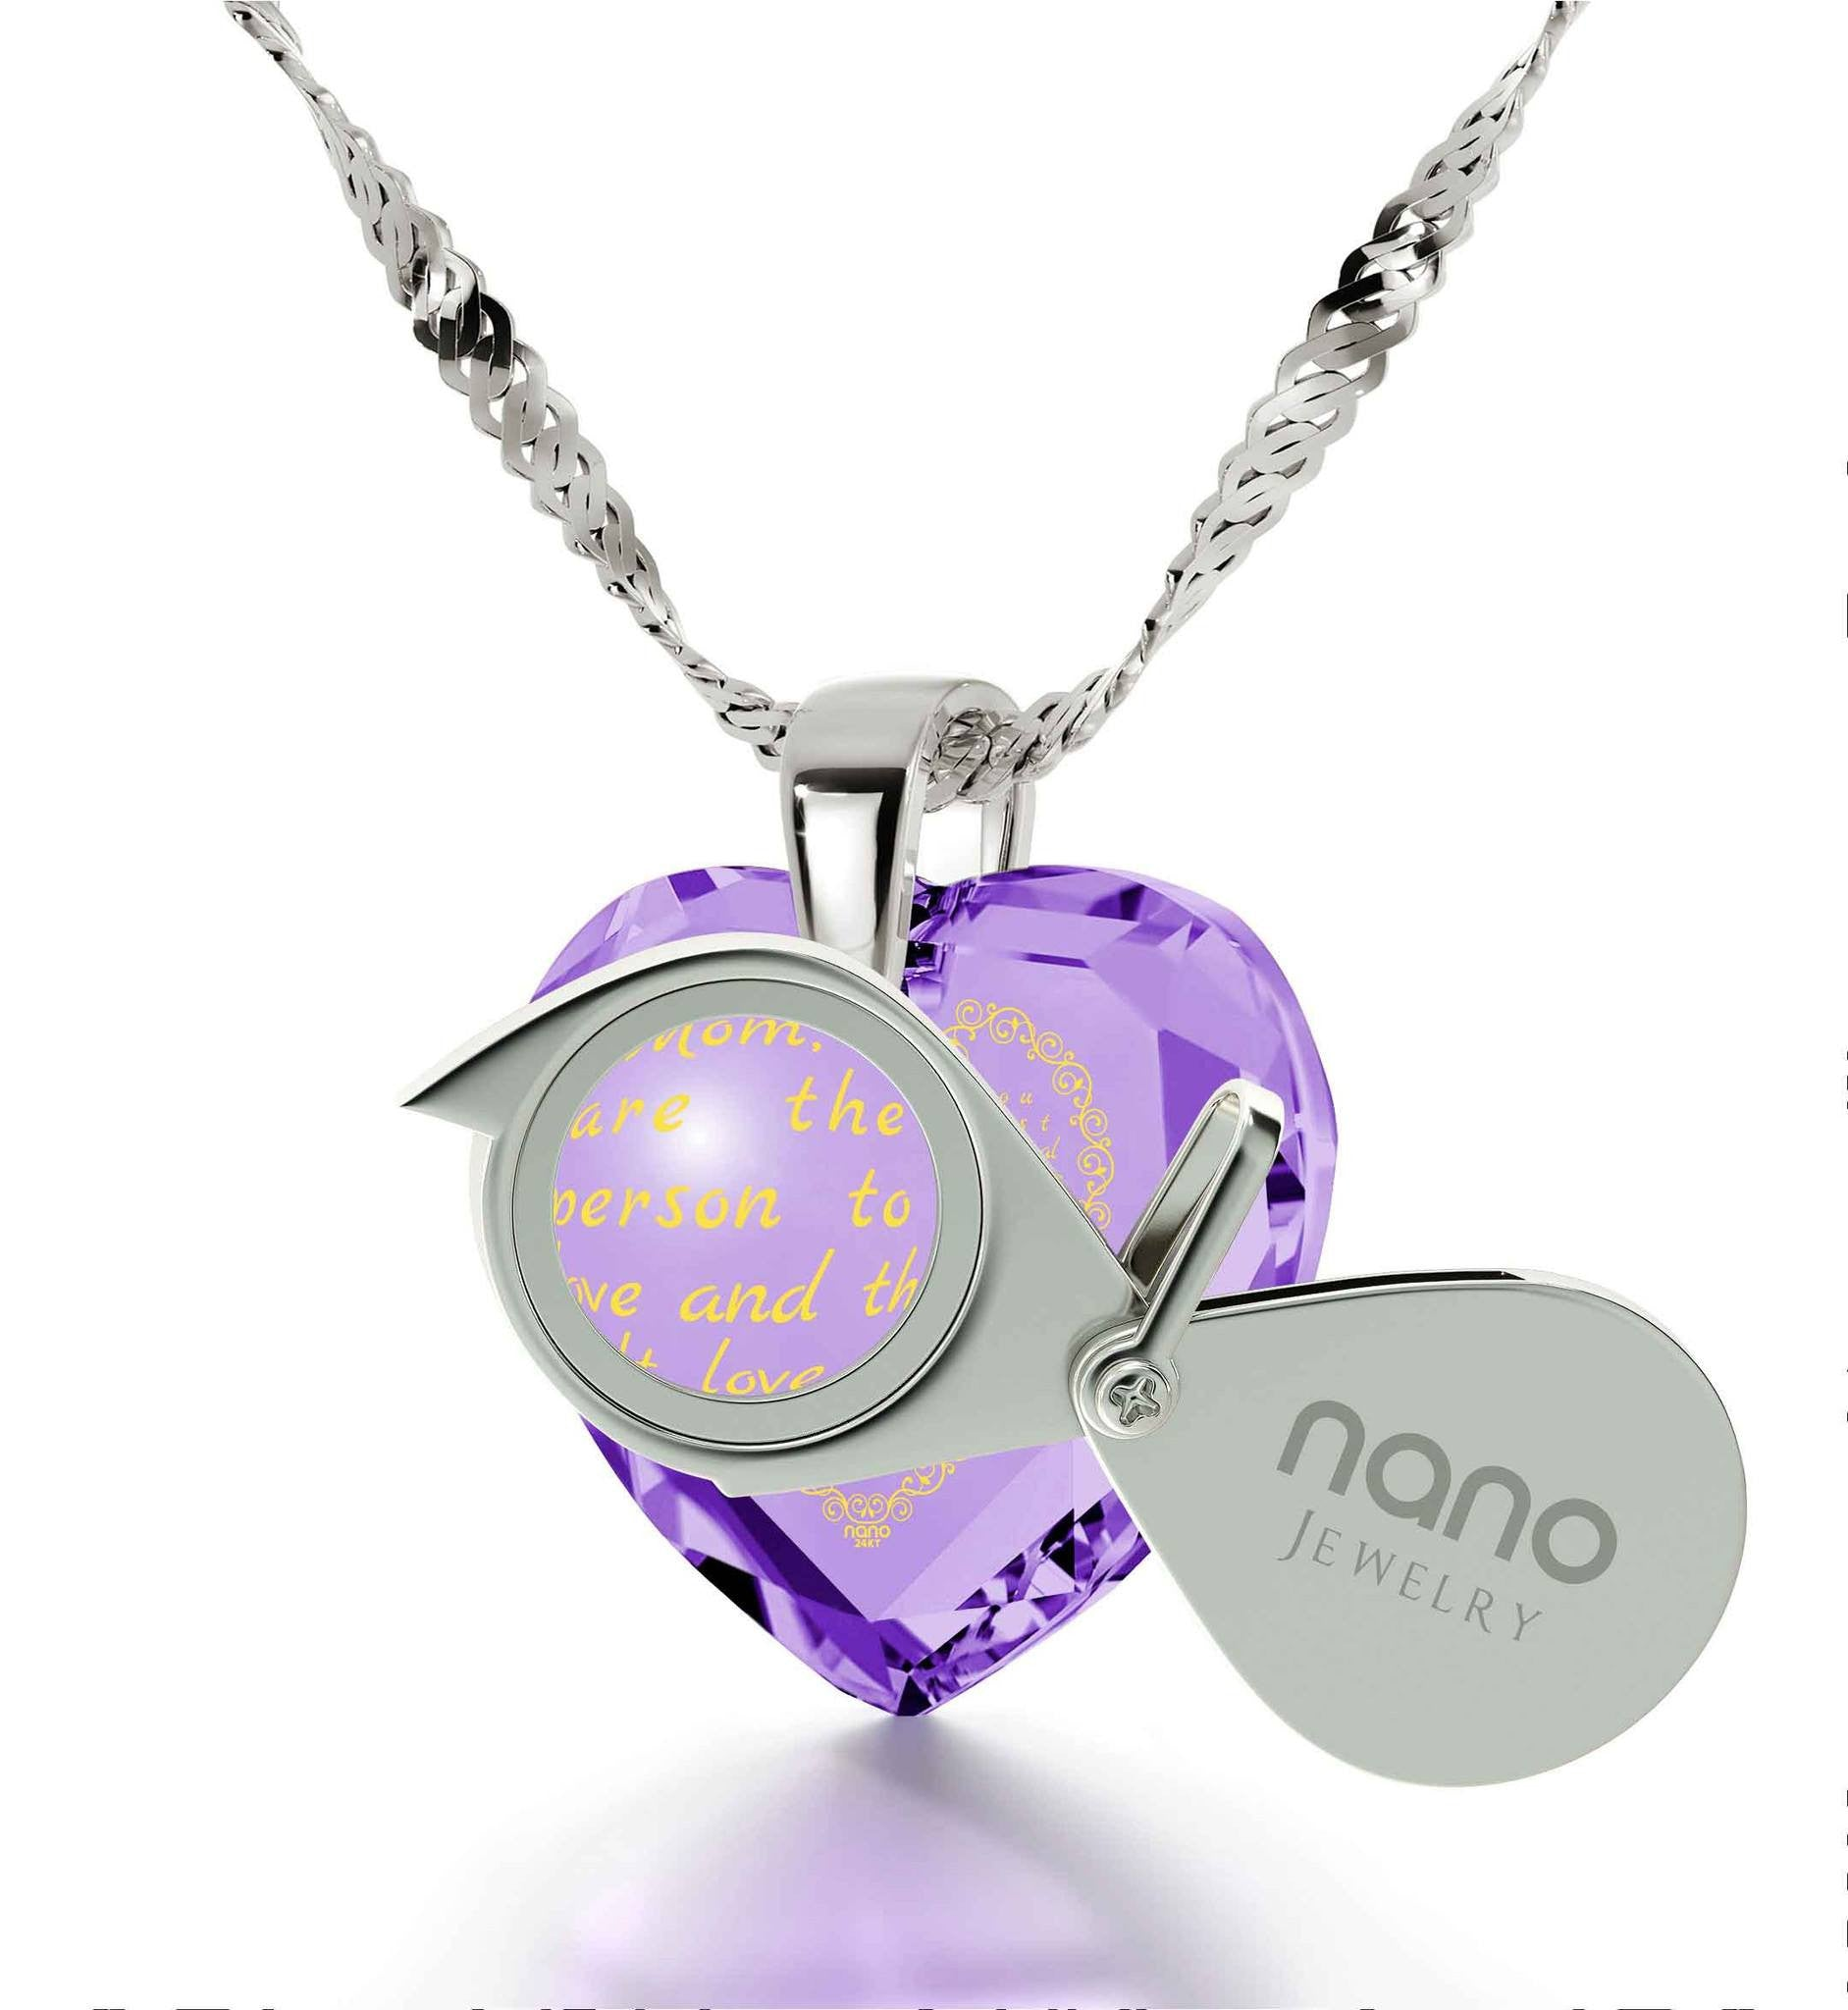 Top Gifts for Mom, Mother's Day Jewelry, Purple Necklace, Engraved in 24k, by Nano